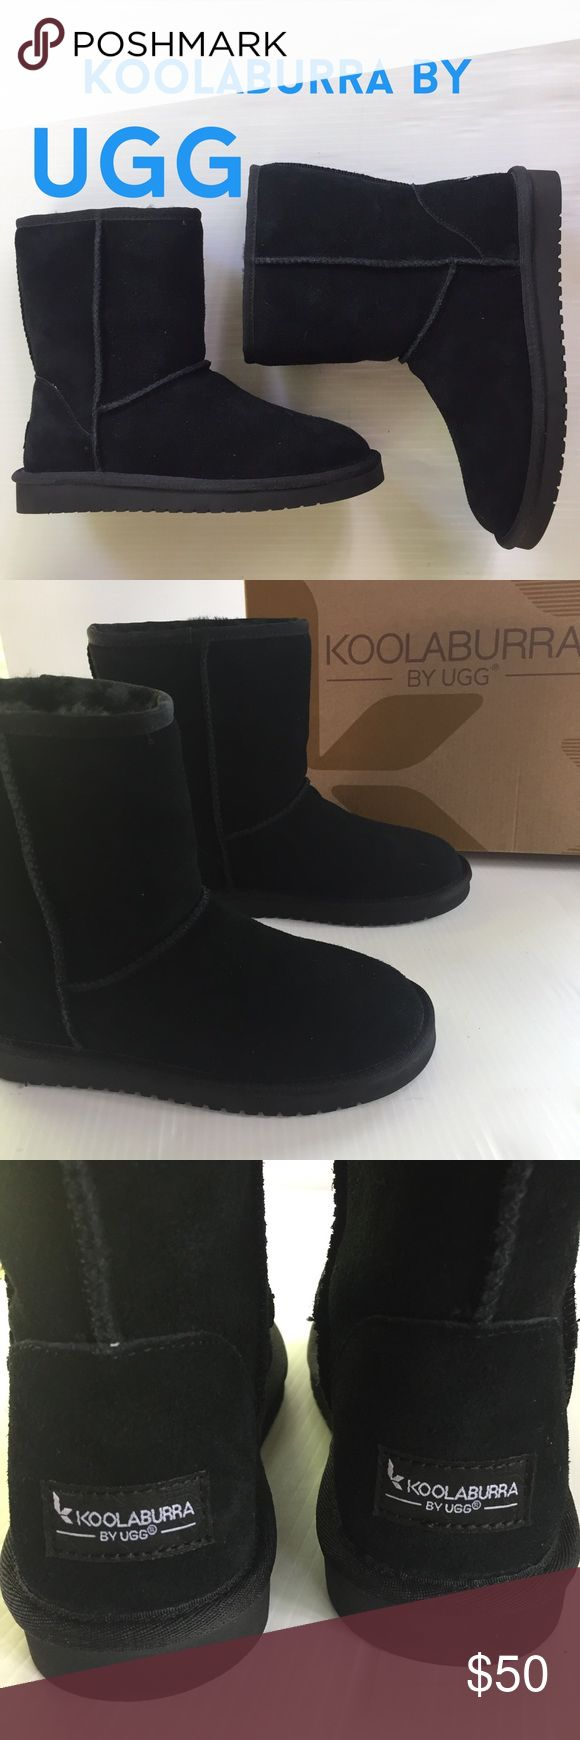 "NWT Koolaburra by UGG classic short boot black 6 Brand new in Original box, Koolaburra by UGG classic short boot in black, made by UGGS. Soft suede upper. Timeless icon! Lined in a combo of breathable lush Australian sheepskin & faux fur interior, cushioning thinsulate sockliner with lightweight durable molded EVA sole. 9"" high from floor to top of shaft. Perfect immaculate brand new. Ugg quality at a great price! Style 1017090, black with black fur inside.  Size 6. Retail $79.99.  (#482)…"